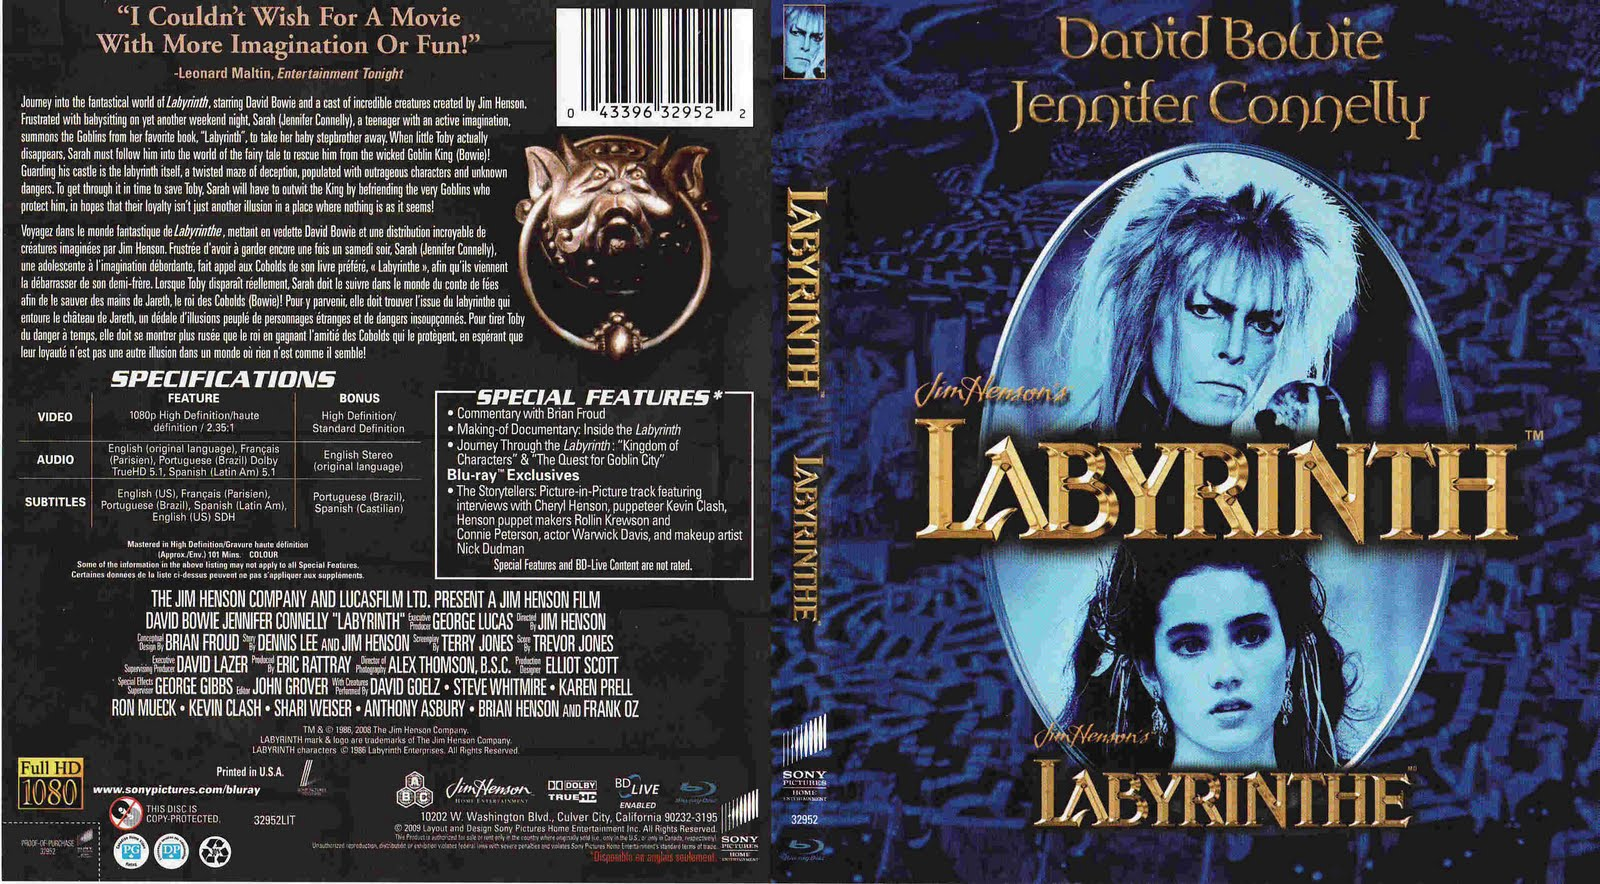 labyrinth_1986_ws_r1-_front_www_freecovers_net.jpg